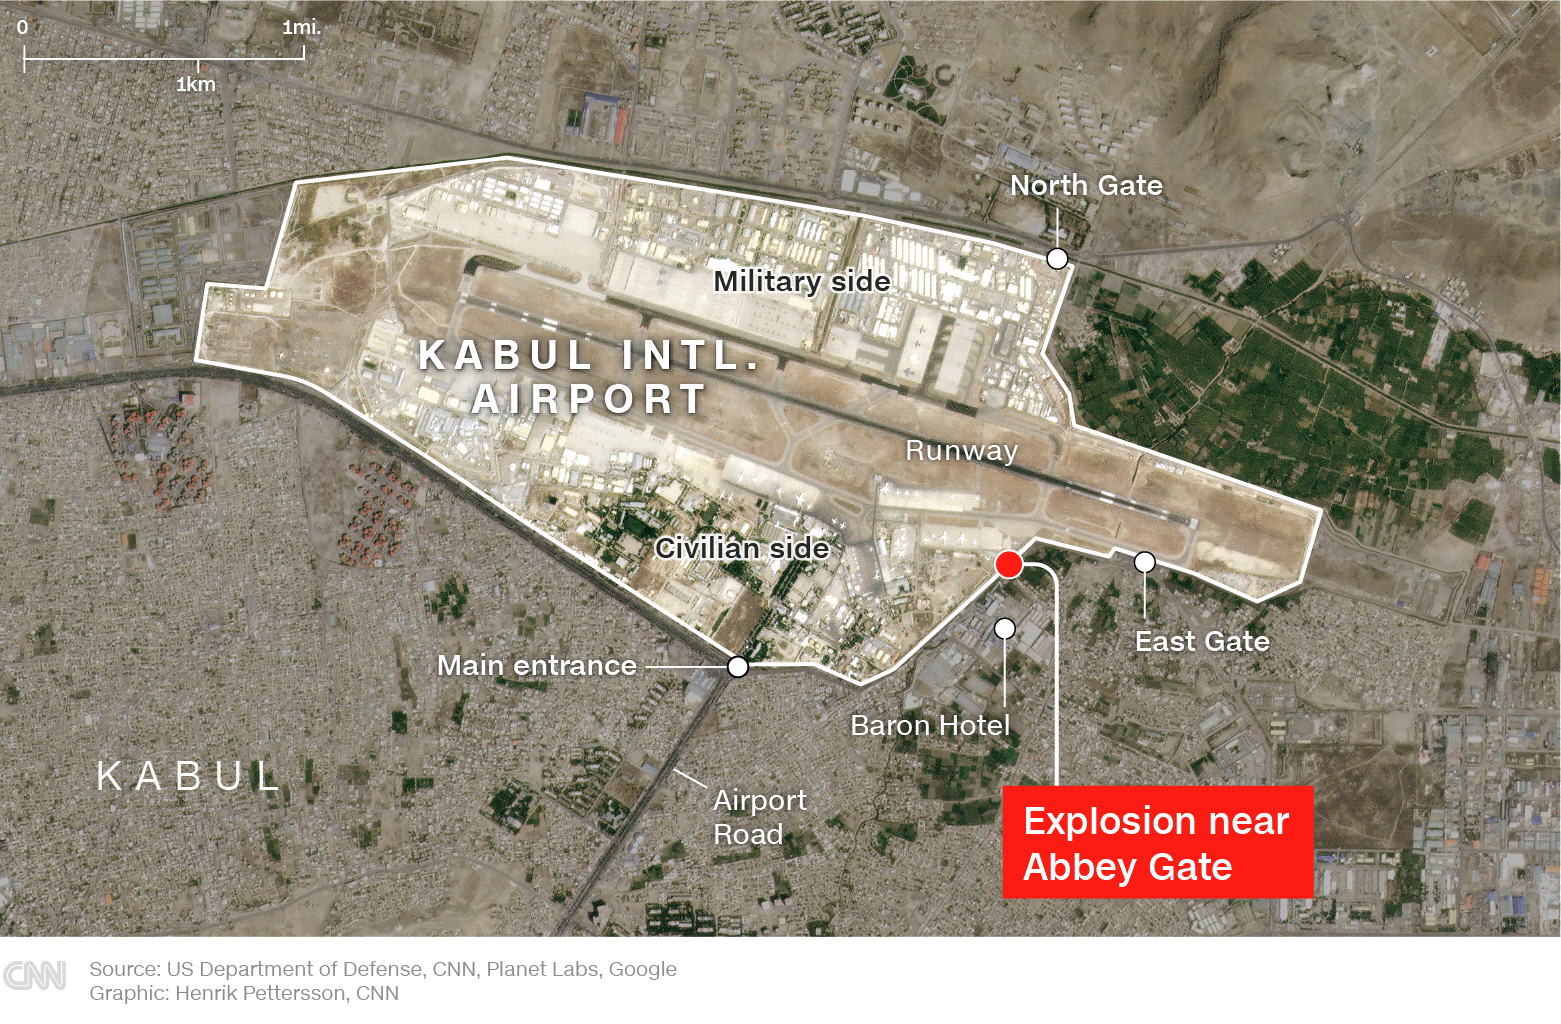 20210827-kabul-explosion-12a-780px-2.png